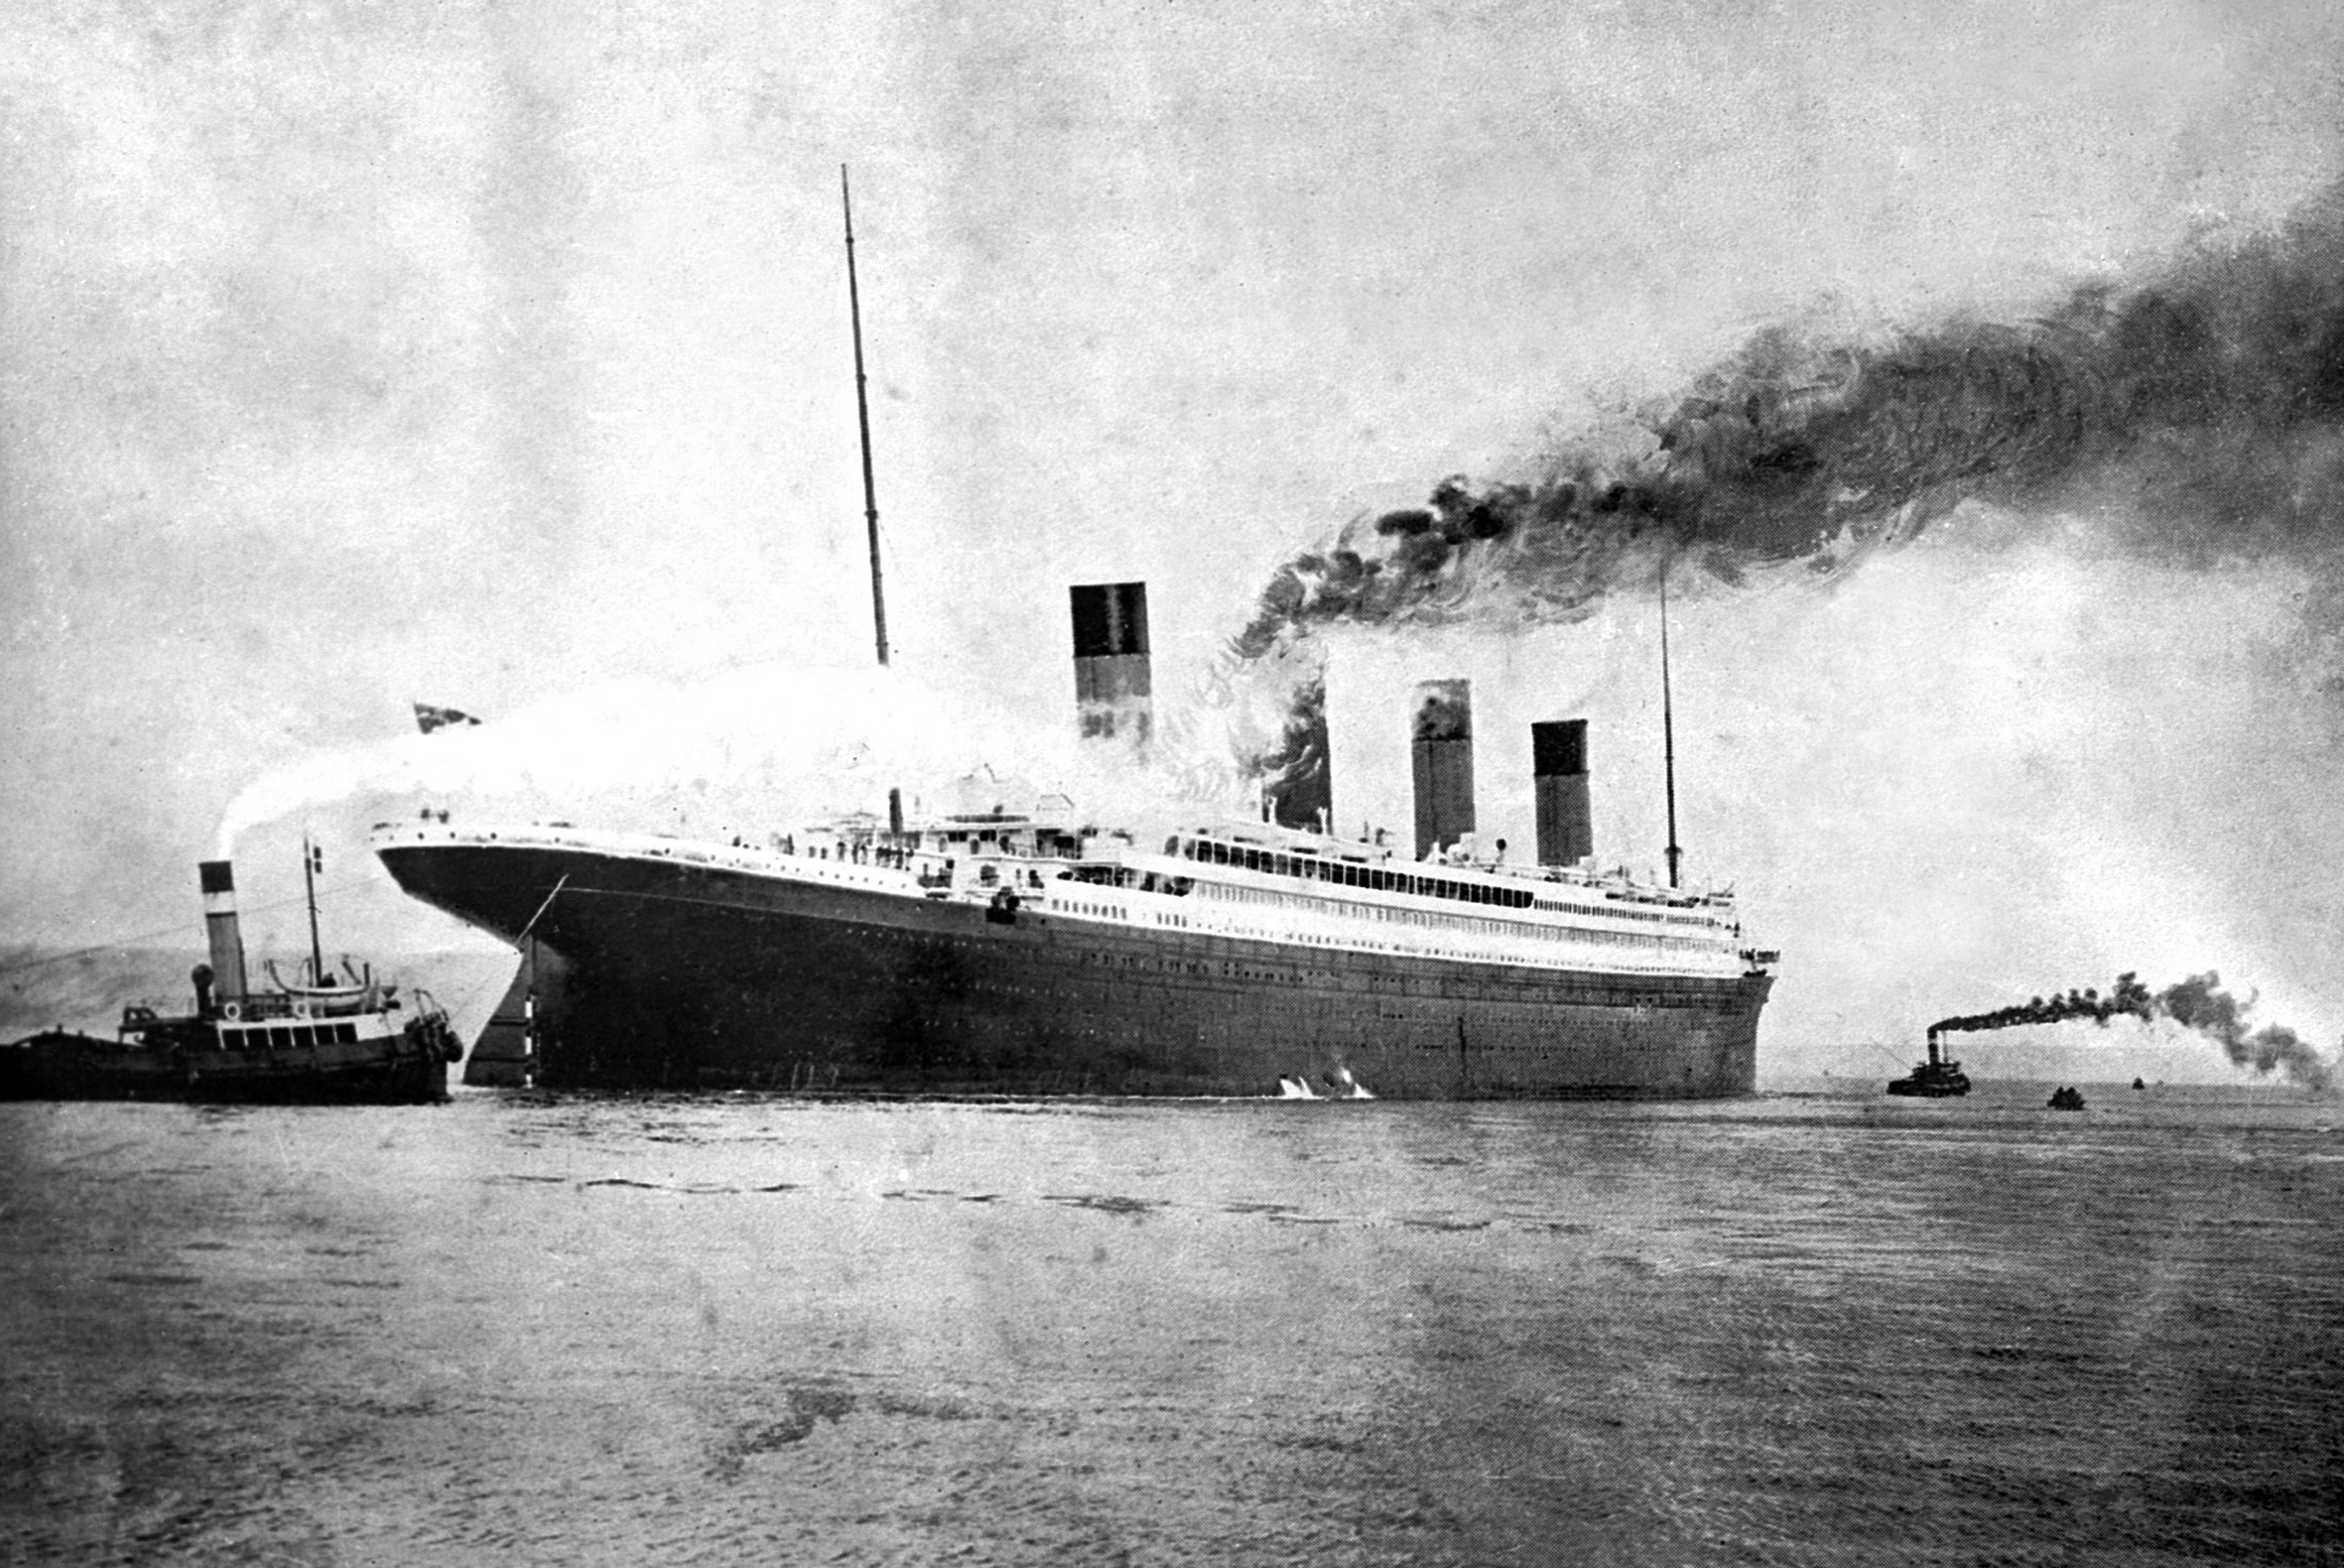 Image of the RMS Titanic leaving Southampton on her maiden voyage in April 1912. TITANIC SCANNED FROM GLASS NEG. Southern Daily Echo Archives..